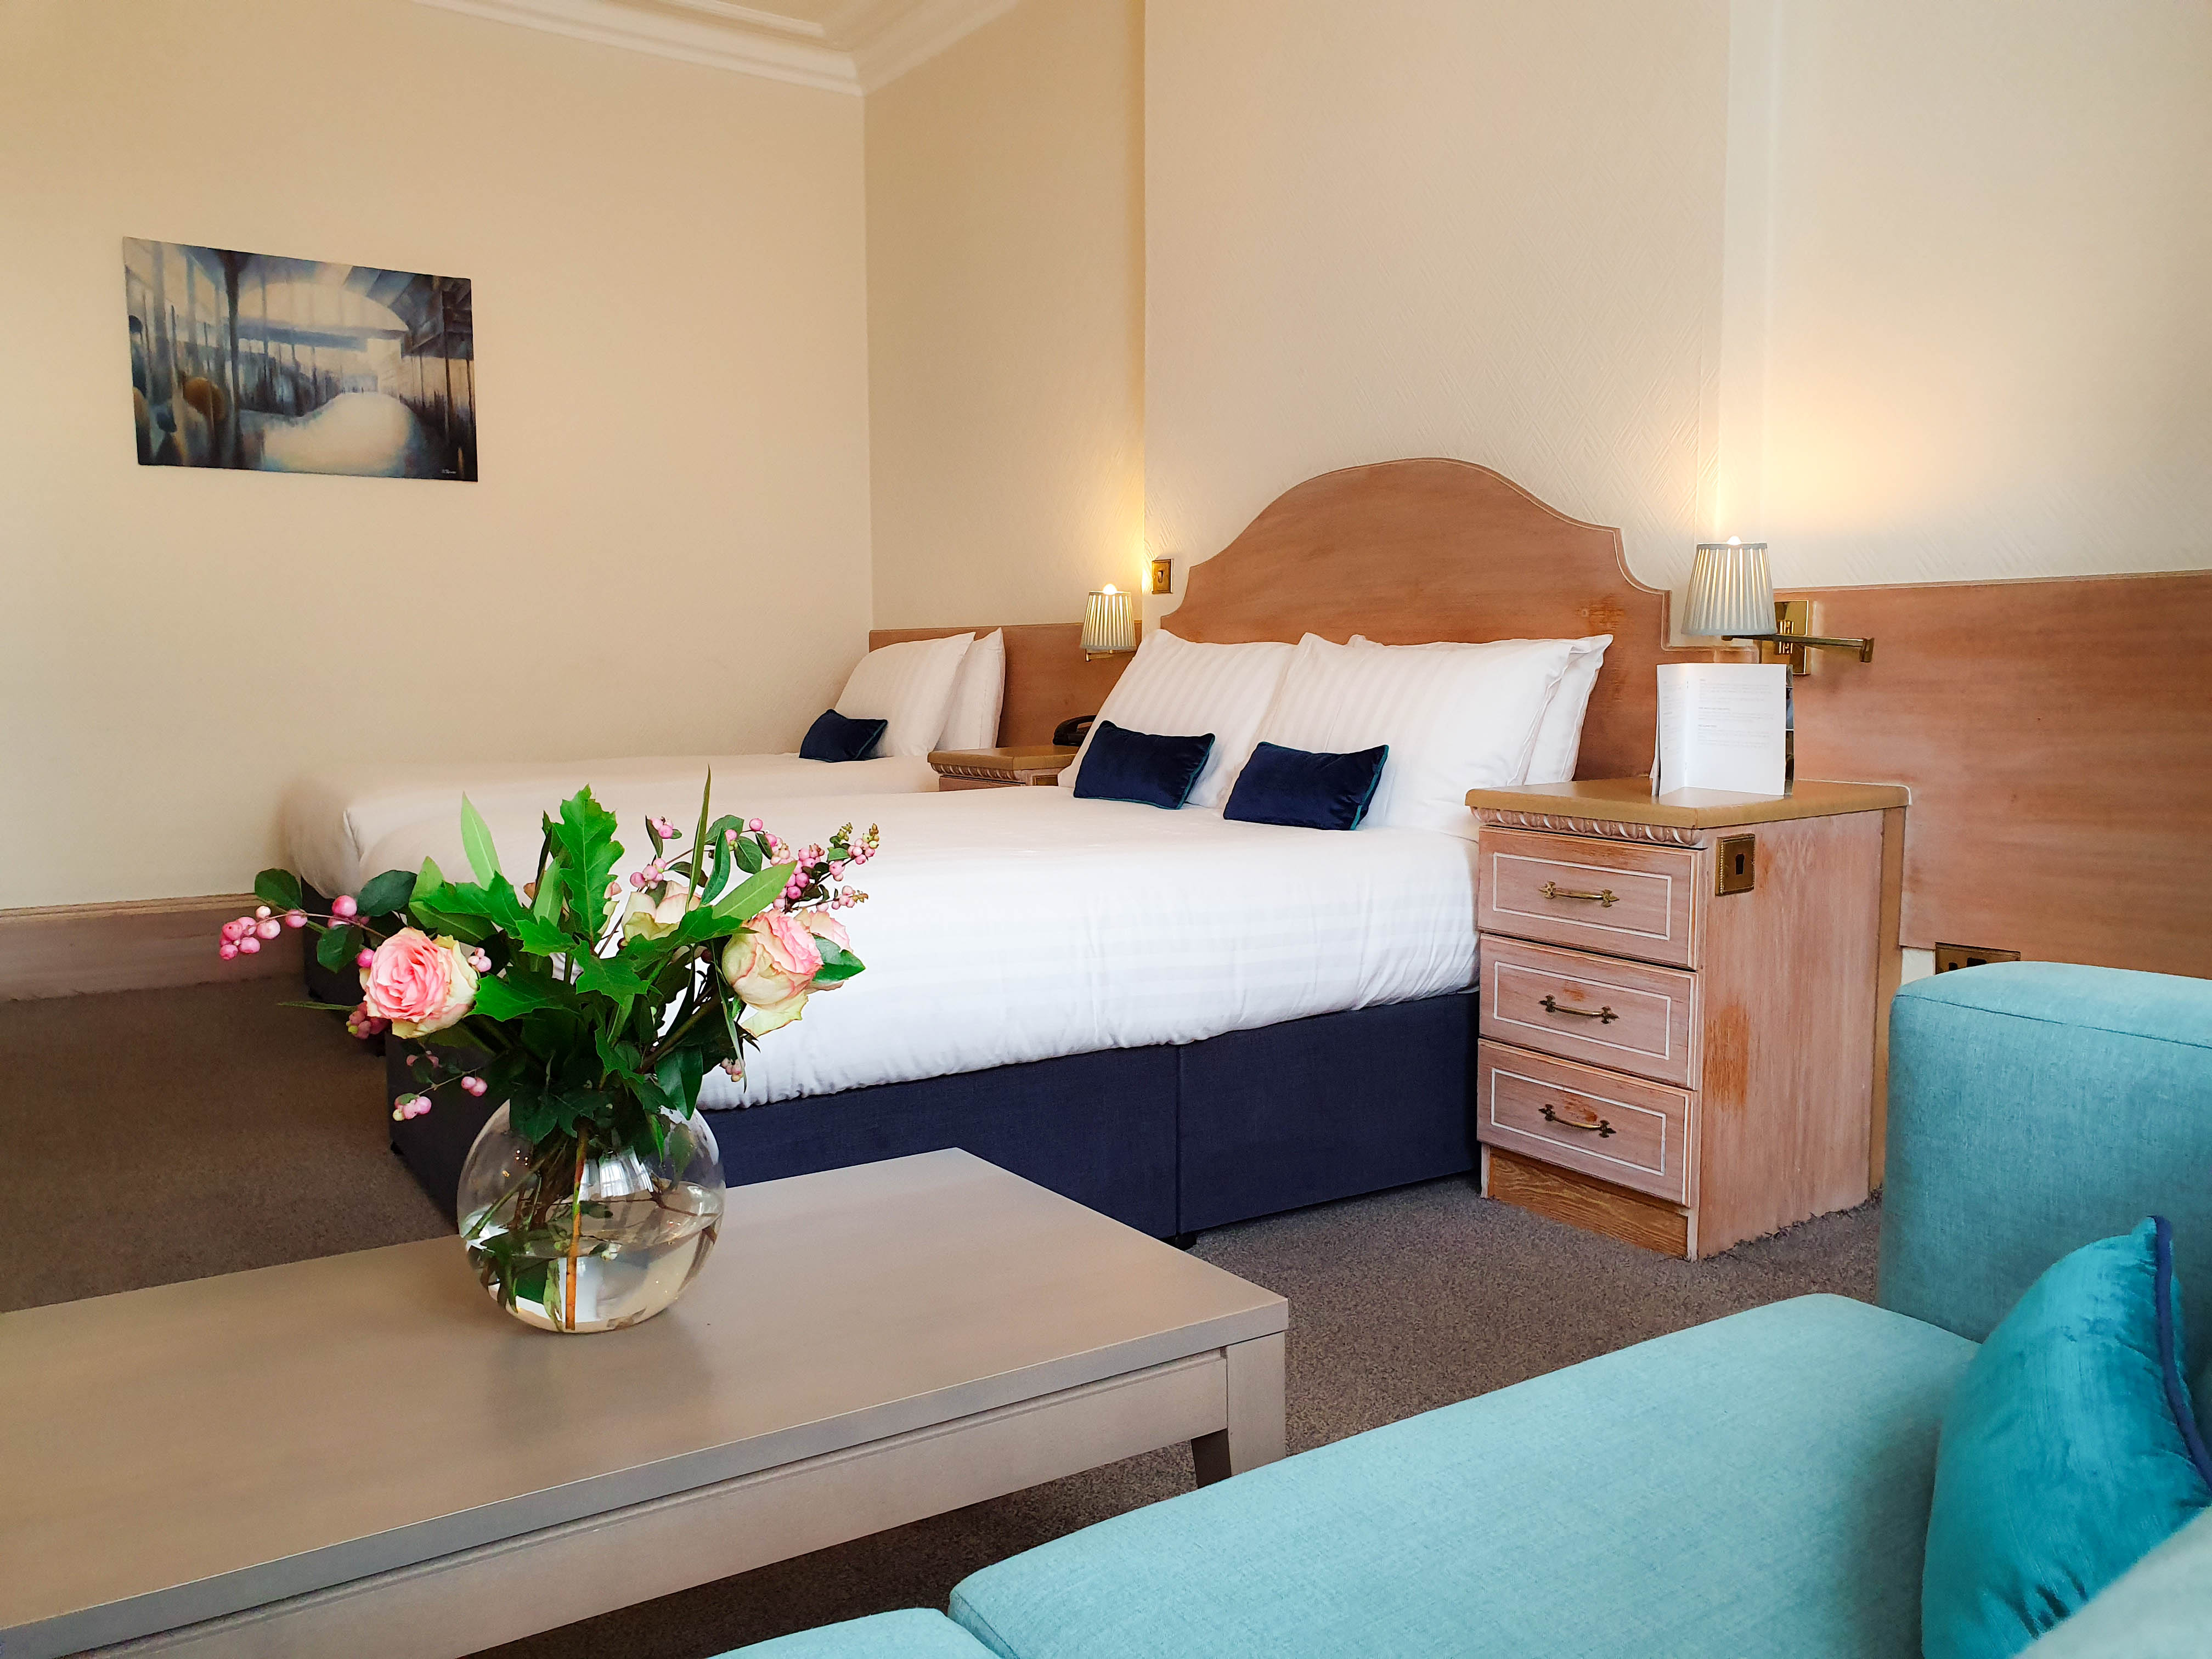 Bournemouth Hotel Room For Families